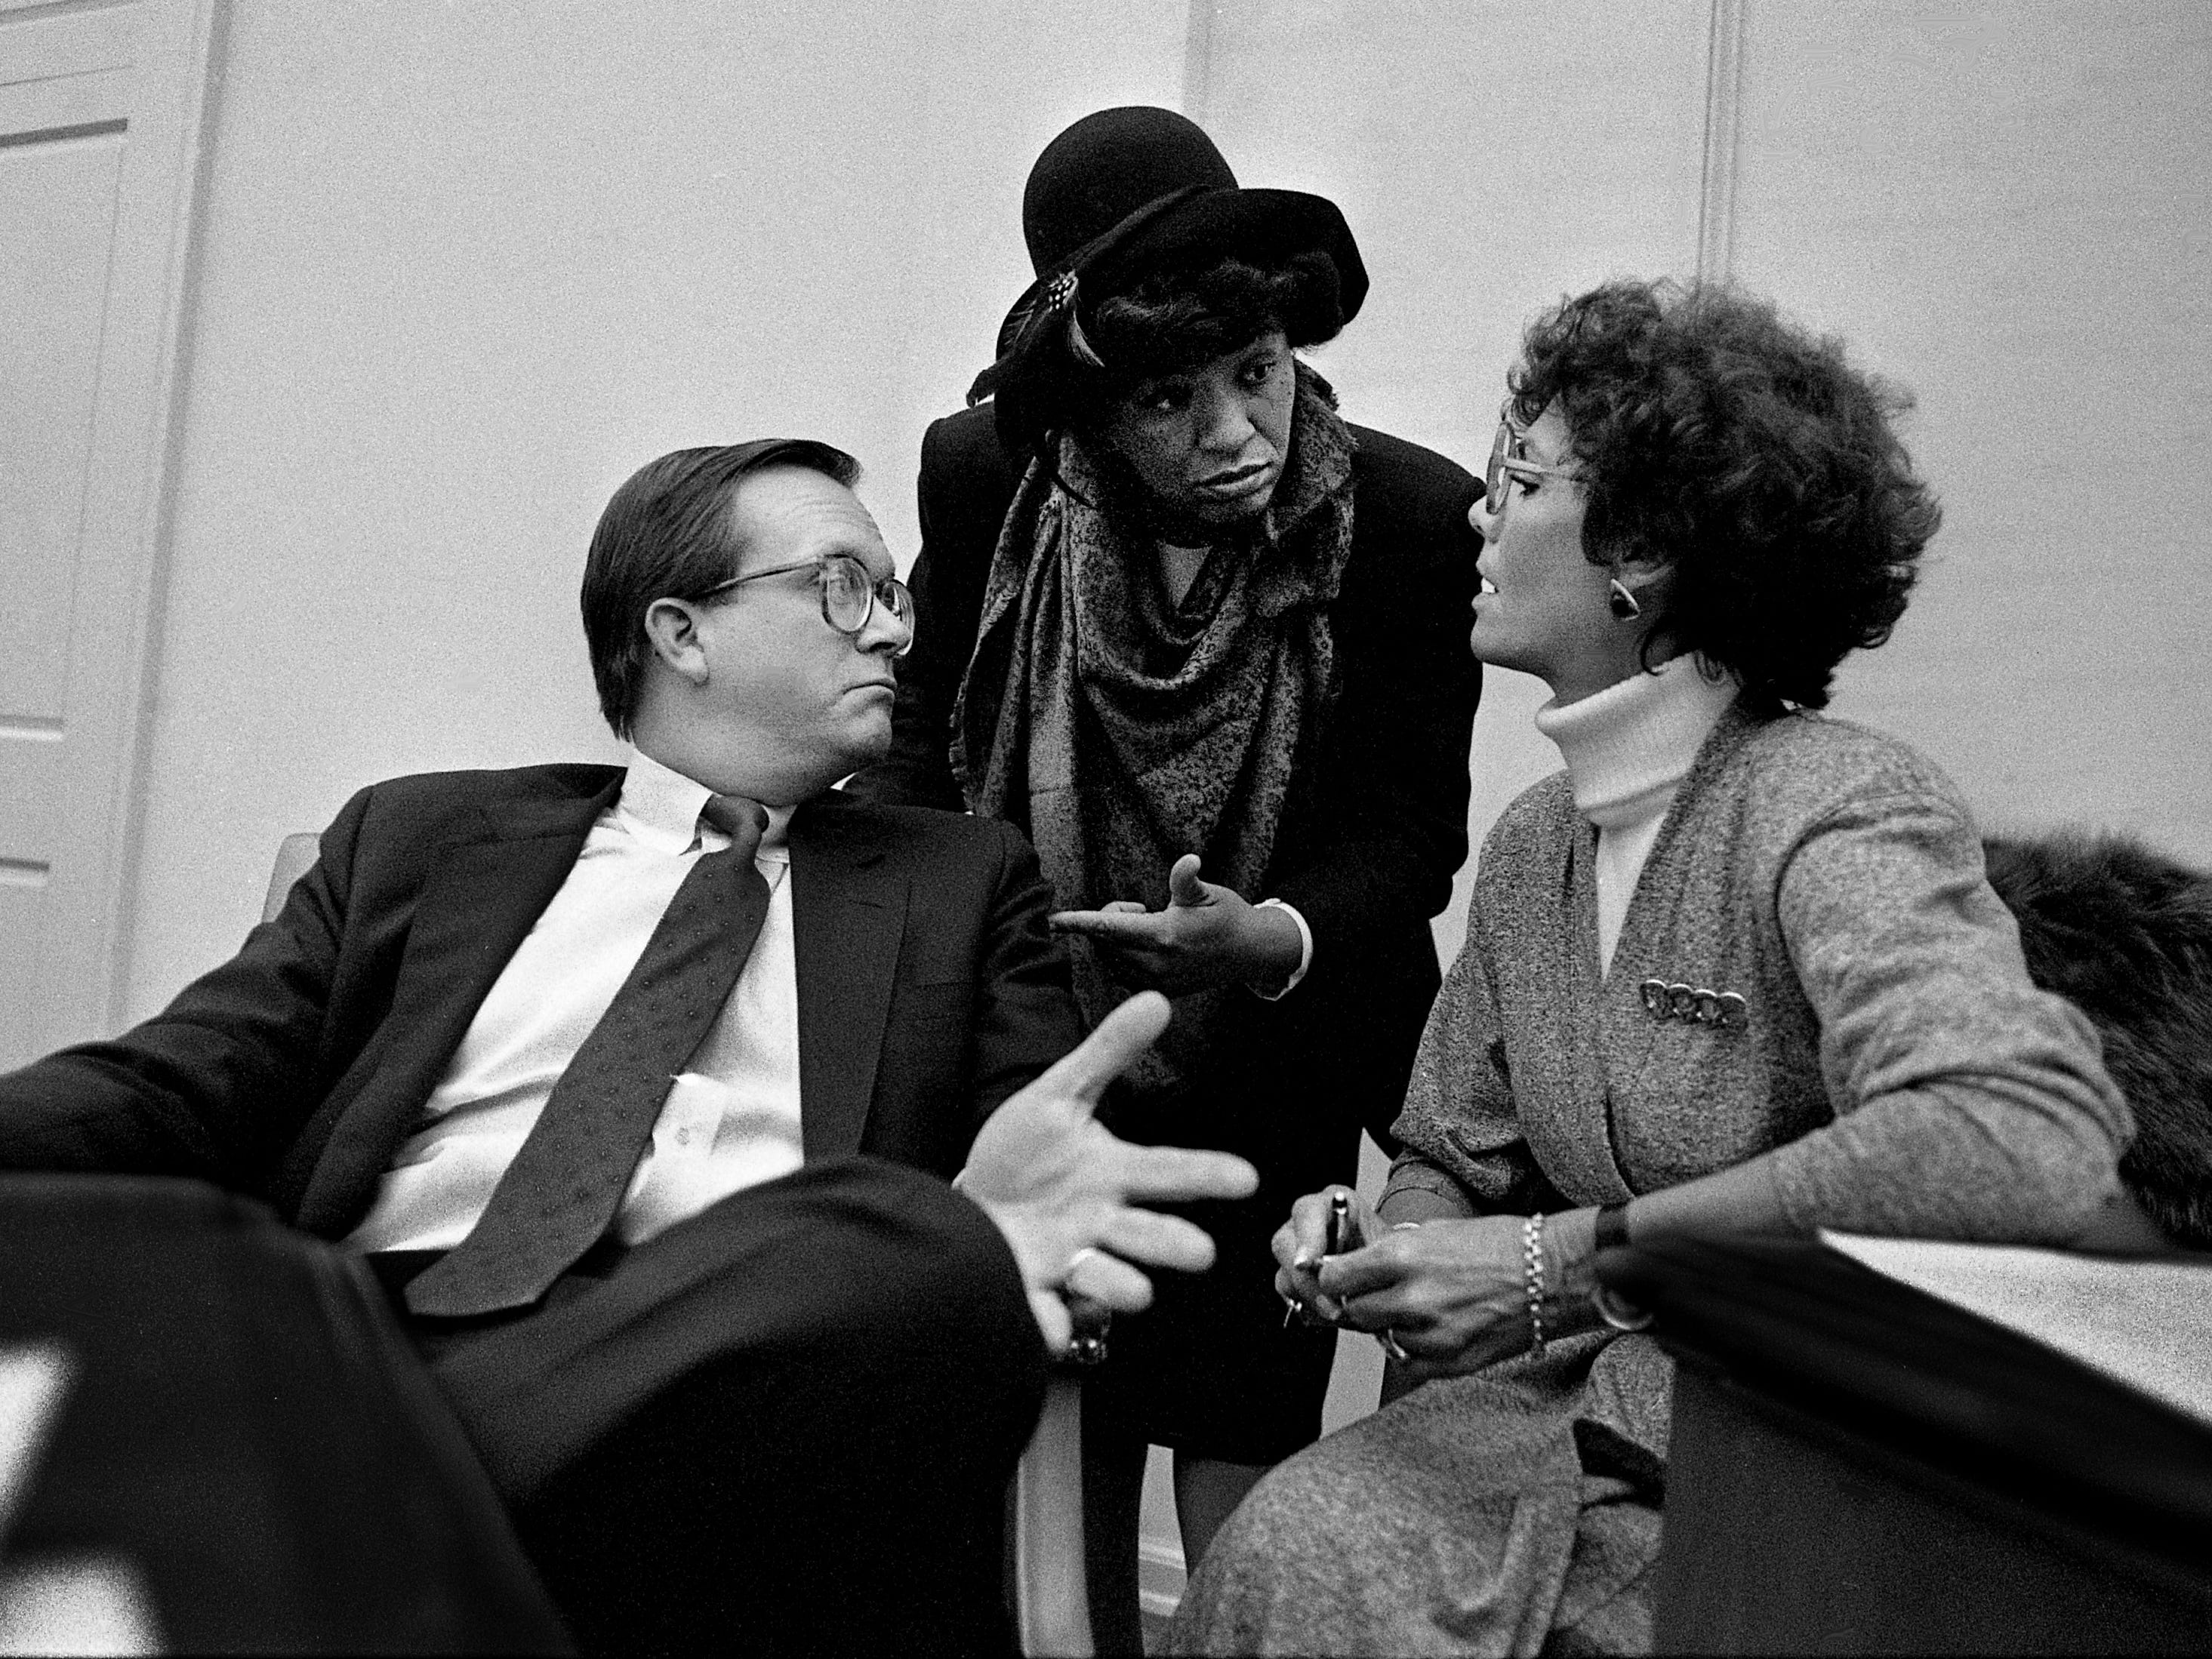 Metro Councilwoman Thelma Harper, center, talks with Councilman Jay West, left, and Councilwoman Jo Ann North about her political battles with Metro Mayor Bill Boner during a council meeting at the Metro Courthouse on Feb. 21, 1989.